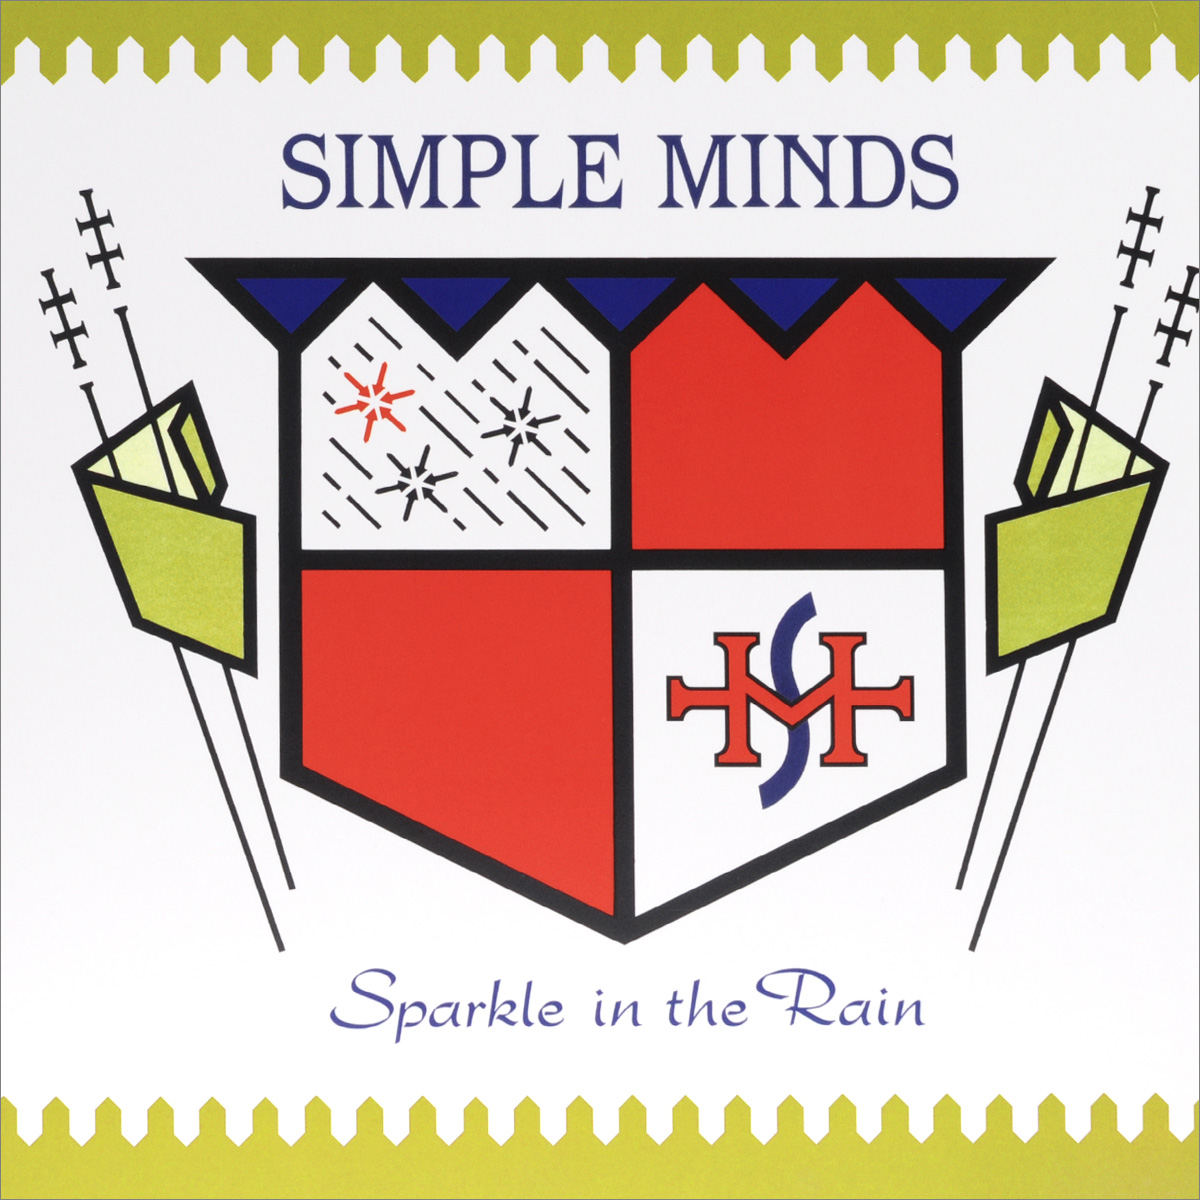 Simple Minds Simple Minds Sparkle In The Rain(LP) disado 21 frets tiger flame maple wood color electric guitar neck guitar accessories guitarra musical instruments parts